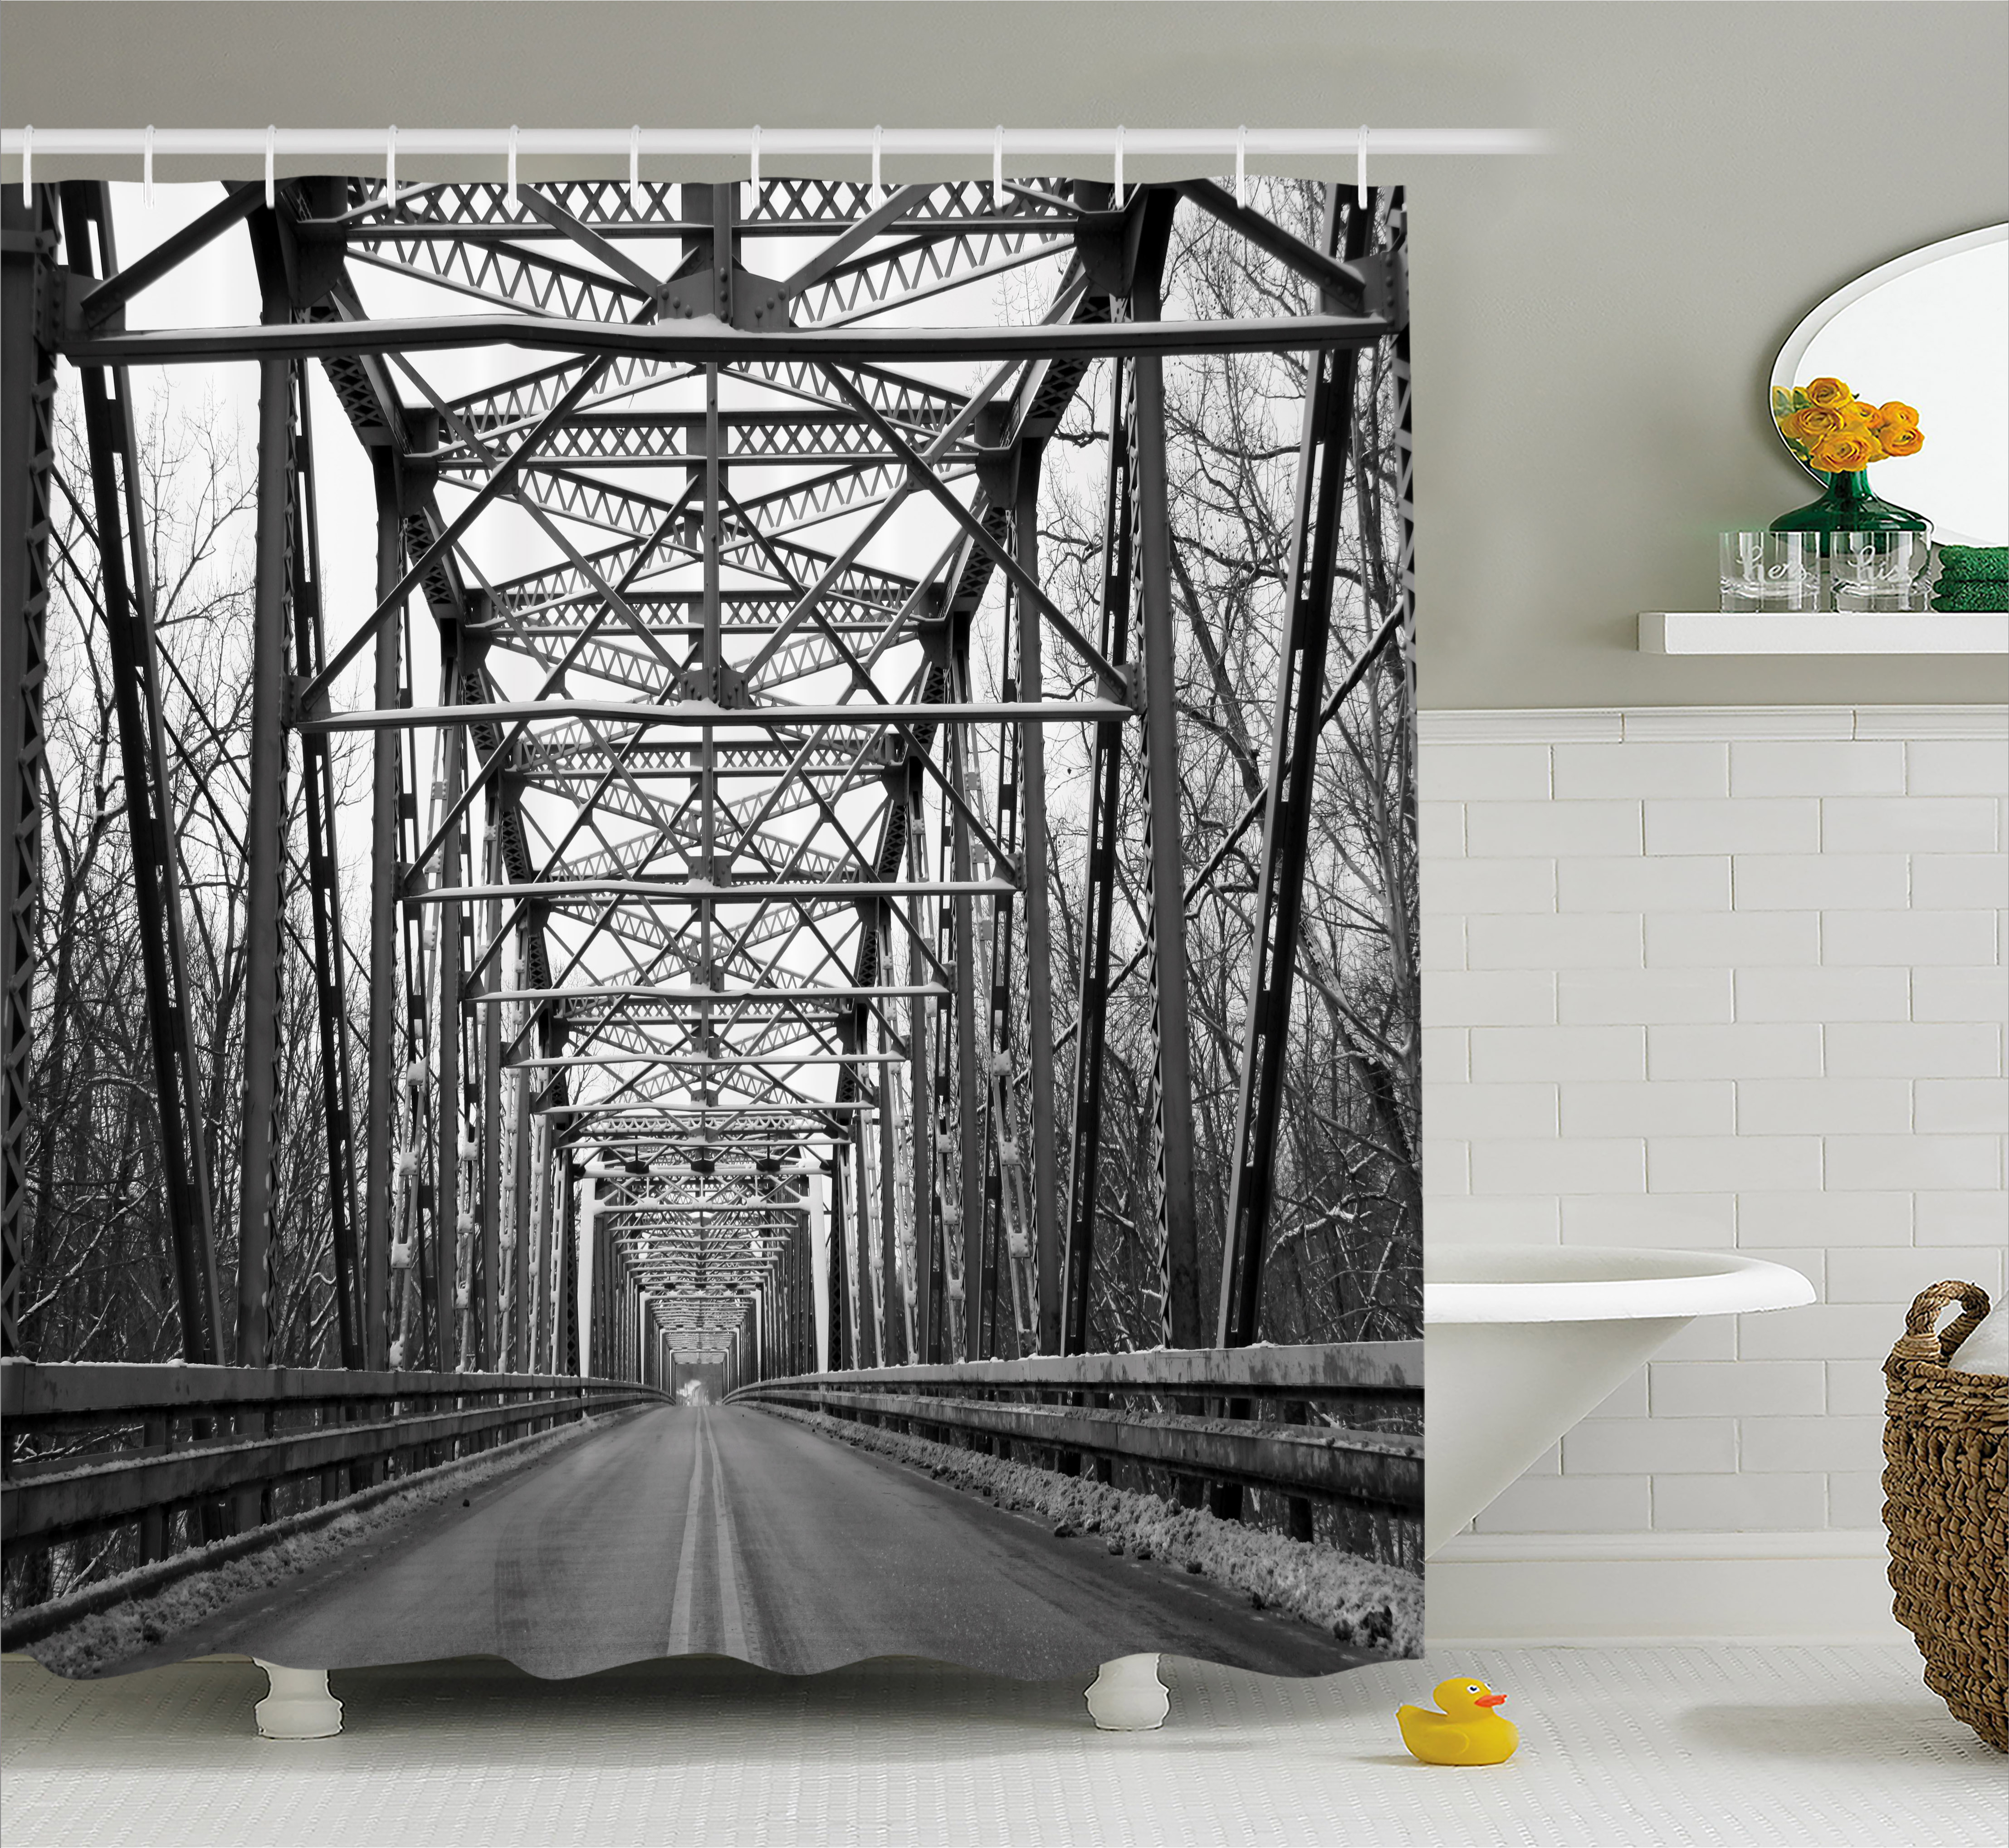 Black and White Shower Curtain, Road Through Bridge Tunnel Urban City and Modern Architecture Image, Fabric Bathroom Set with Hooks, 69W X 75L Inches Long, Black White Grey, by Ambesonne